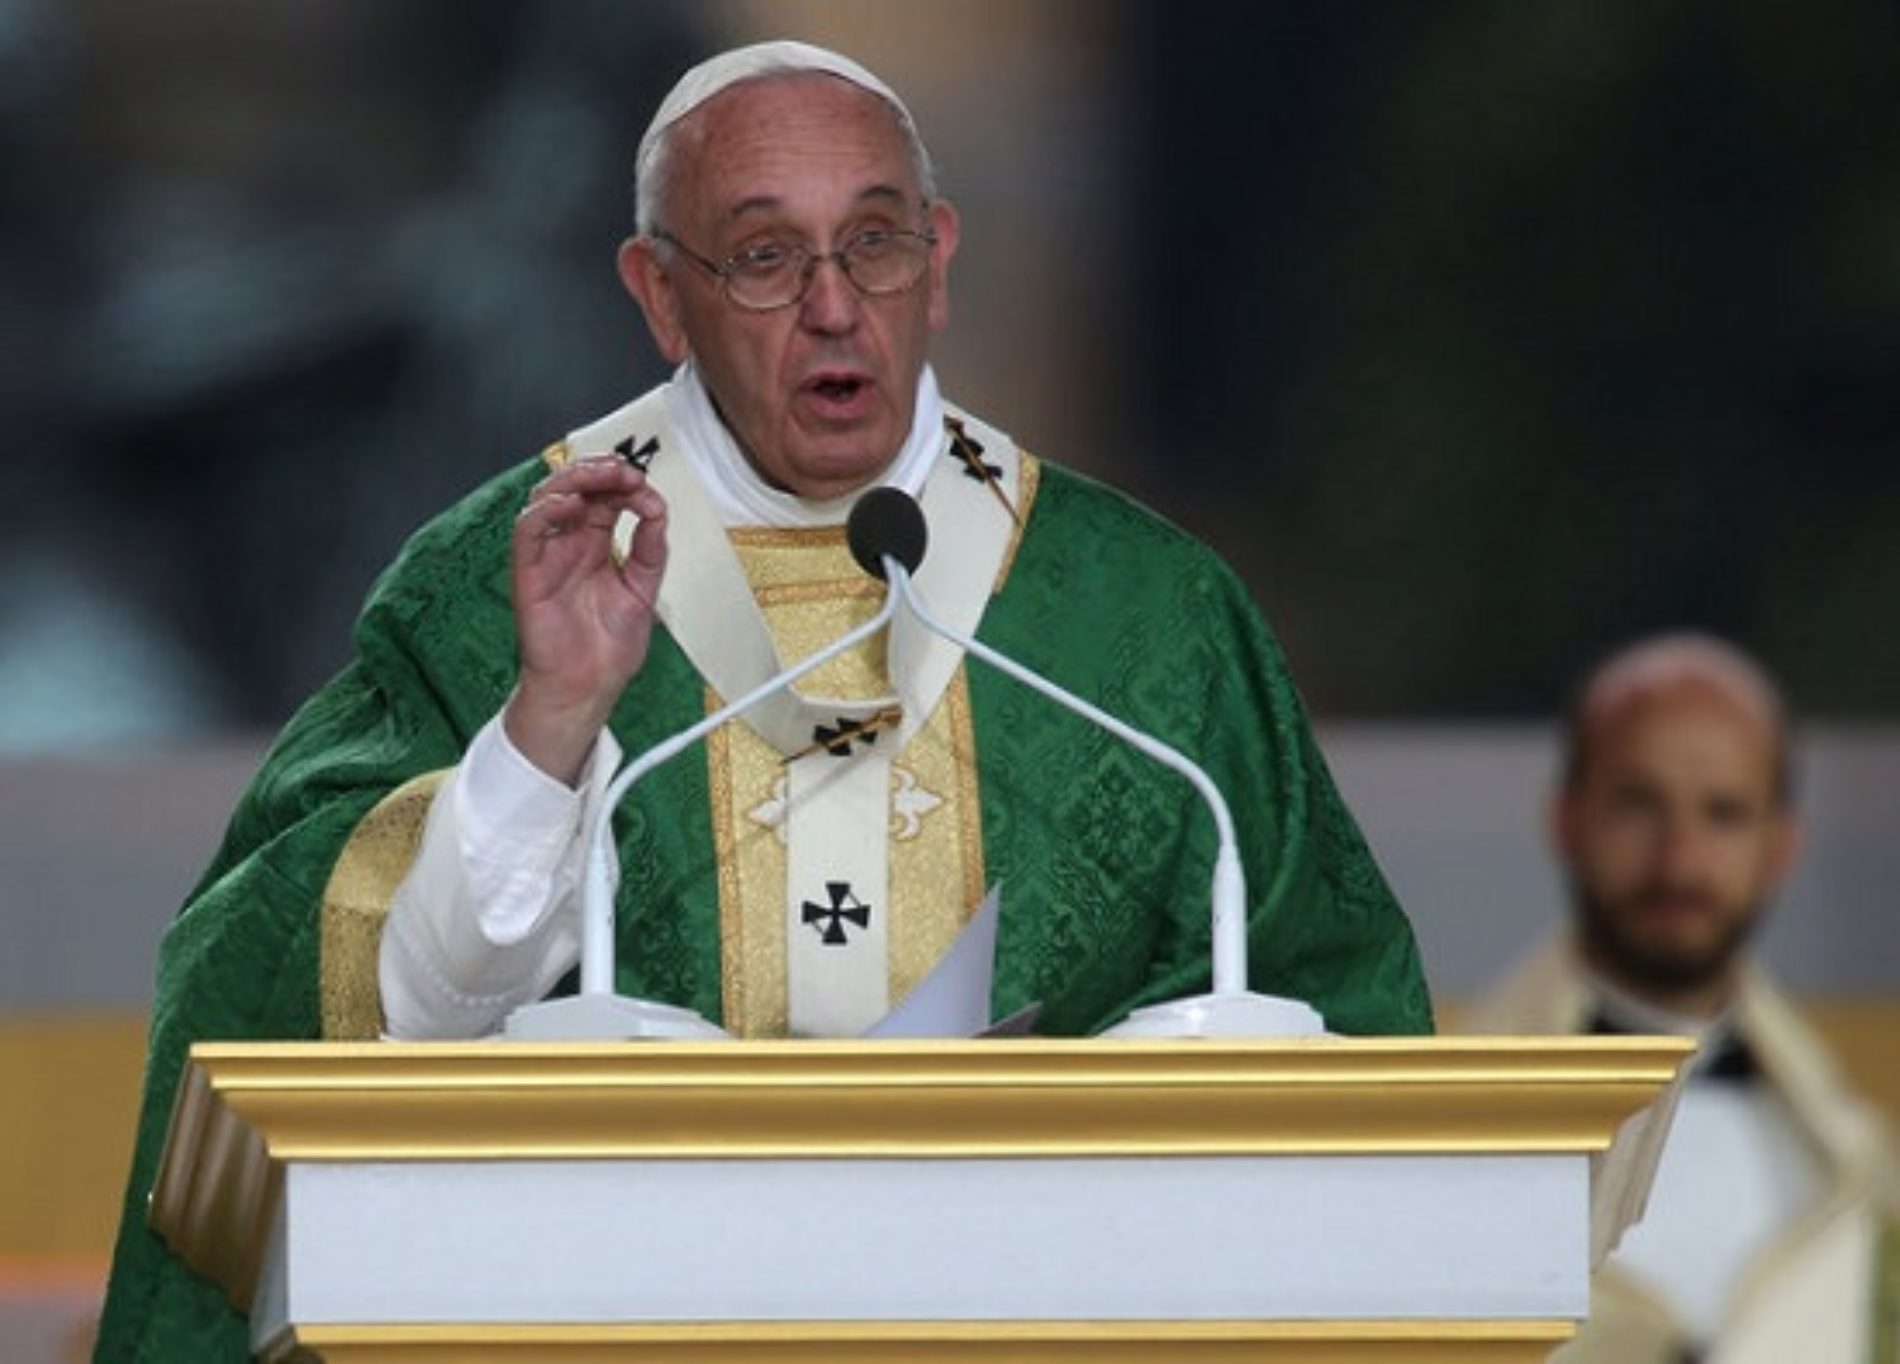 Pope Francis Speaks On Gay Marriage